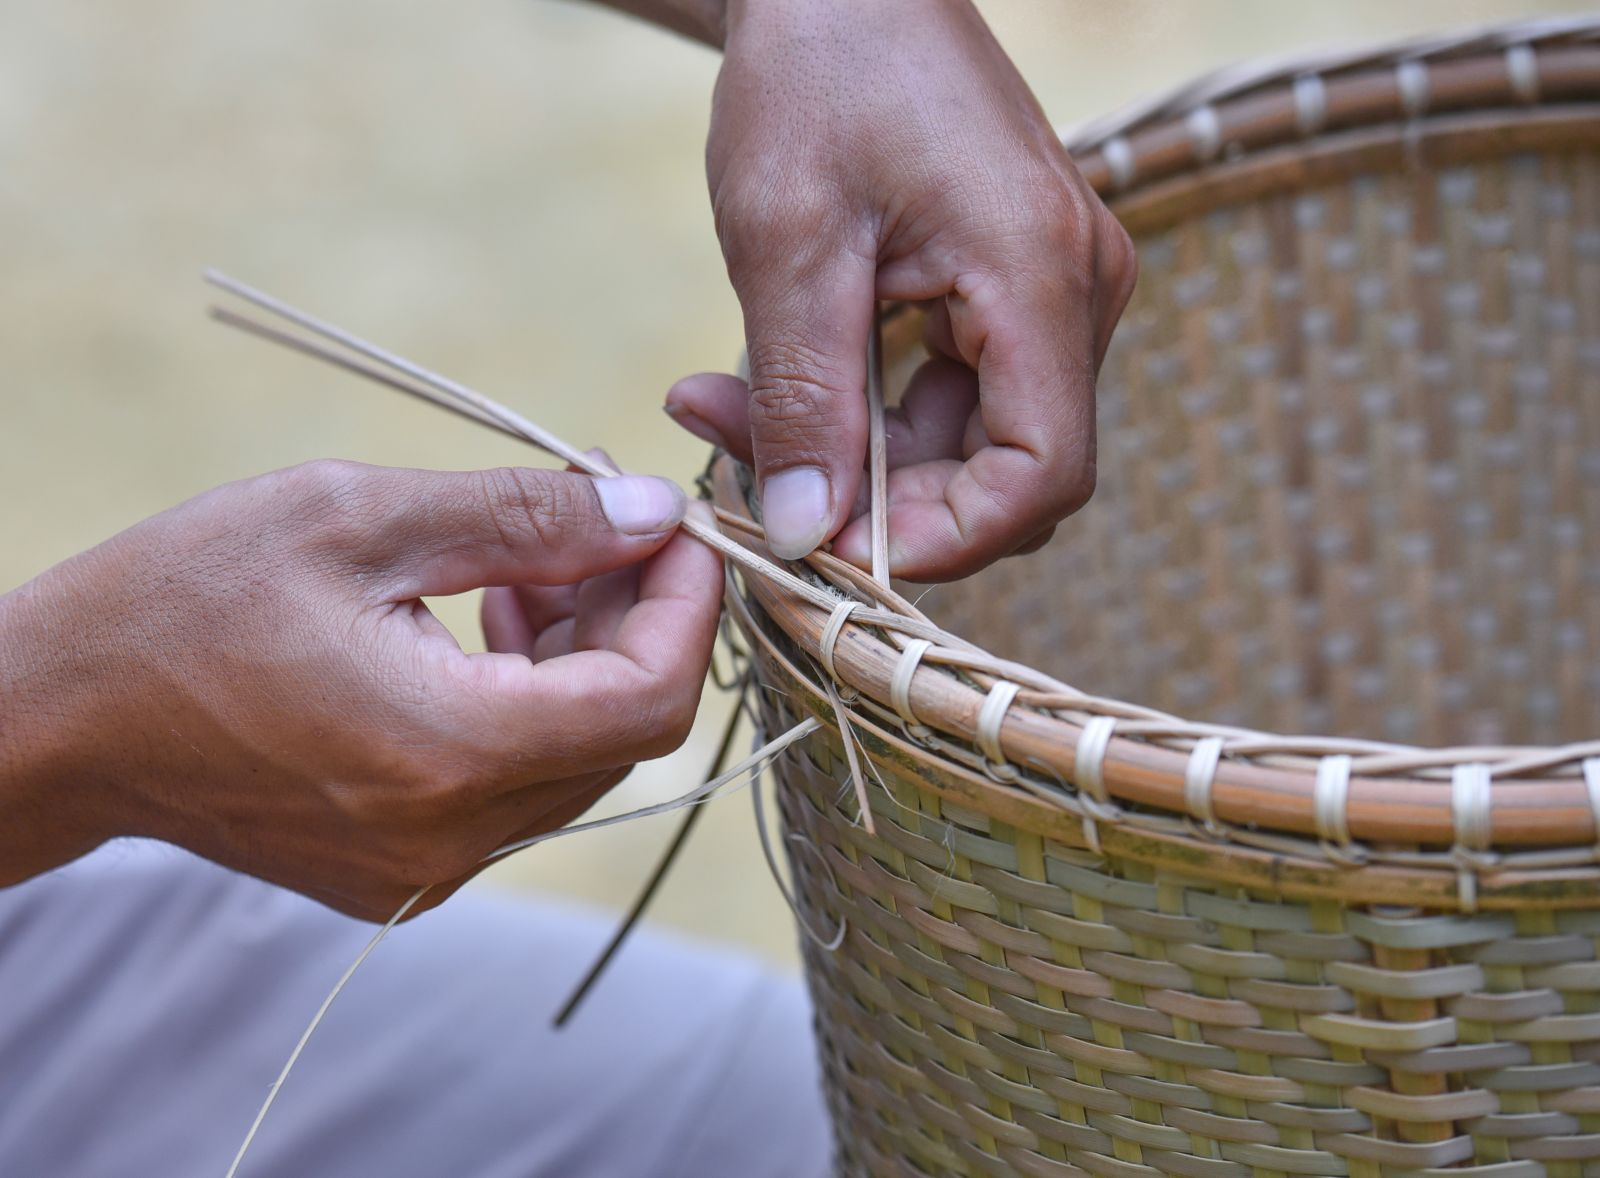 Knotting off the baskets is the last stage of creating a new basket